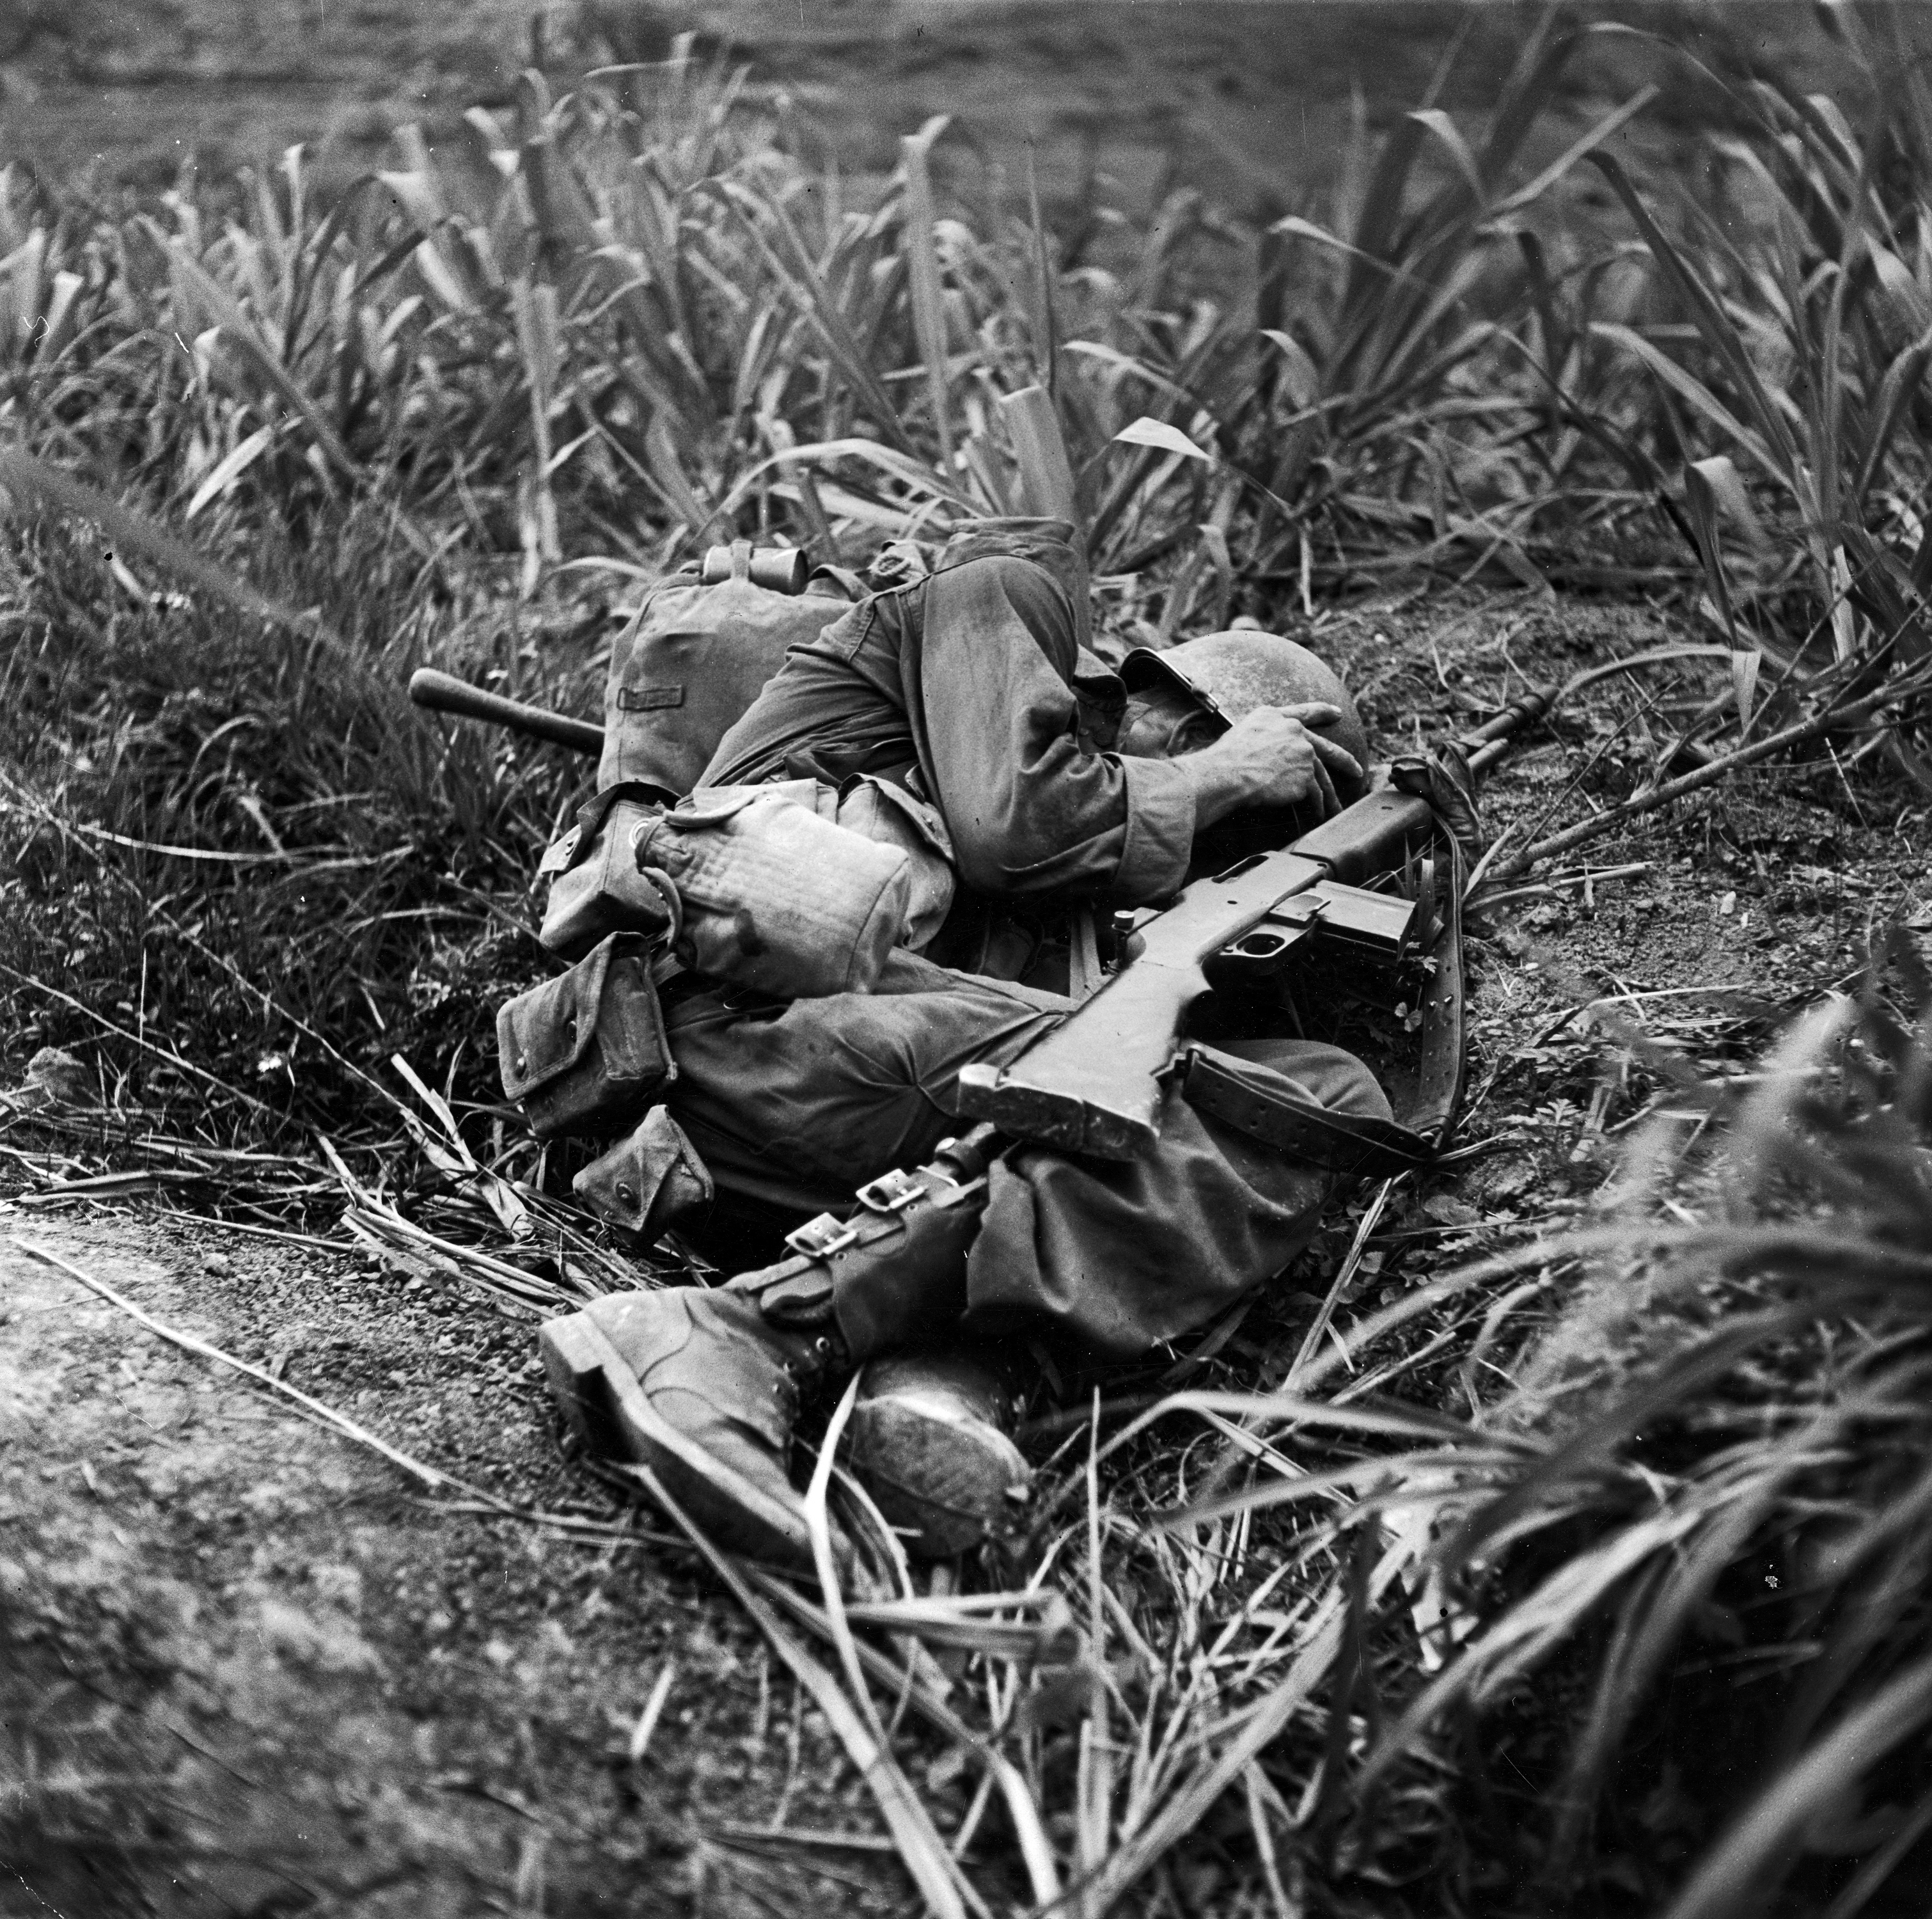 American infantryman Terry Moore takes cover as incoming Japanese artillery fire explodes nearby during the fight to take Okinawa, May 1945.